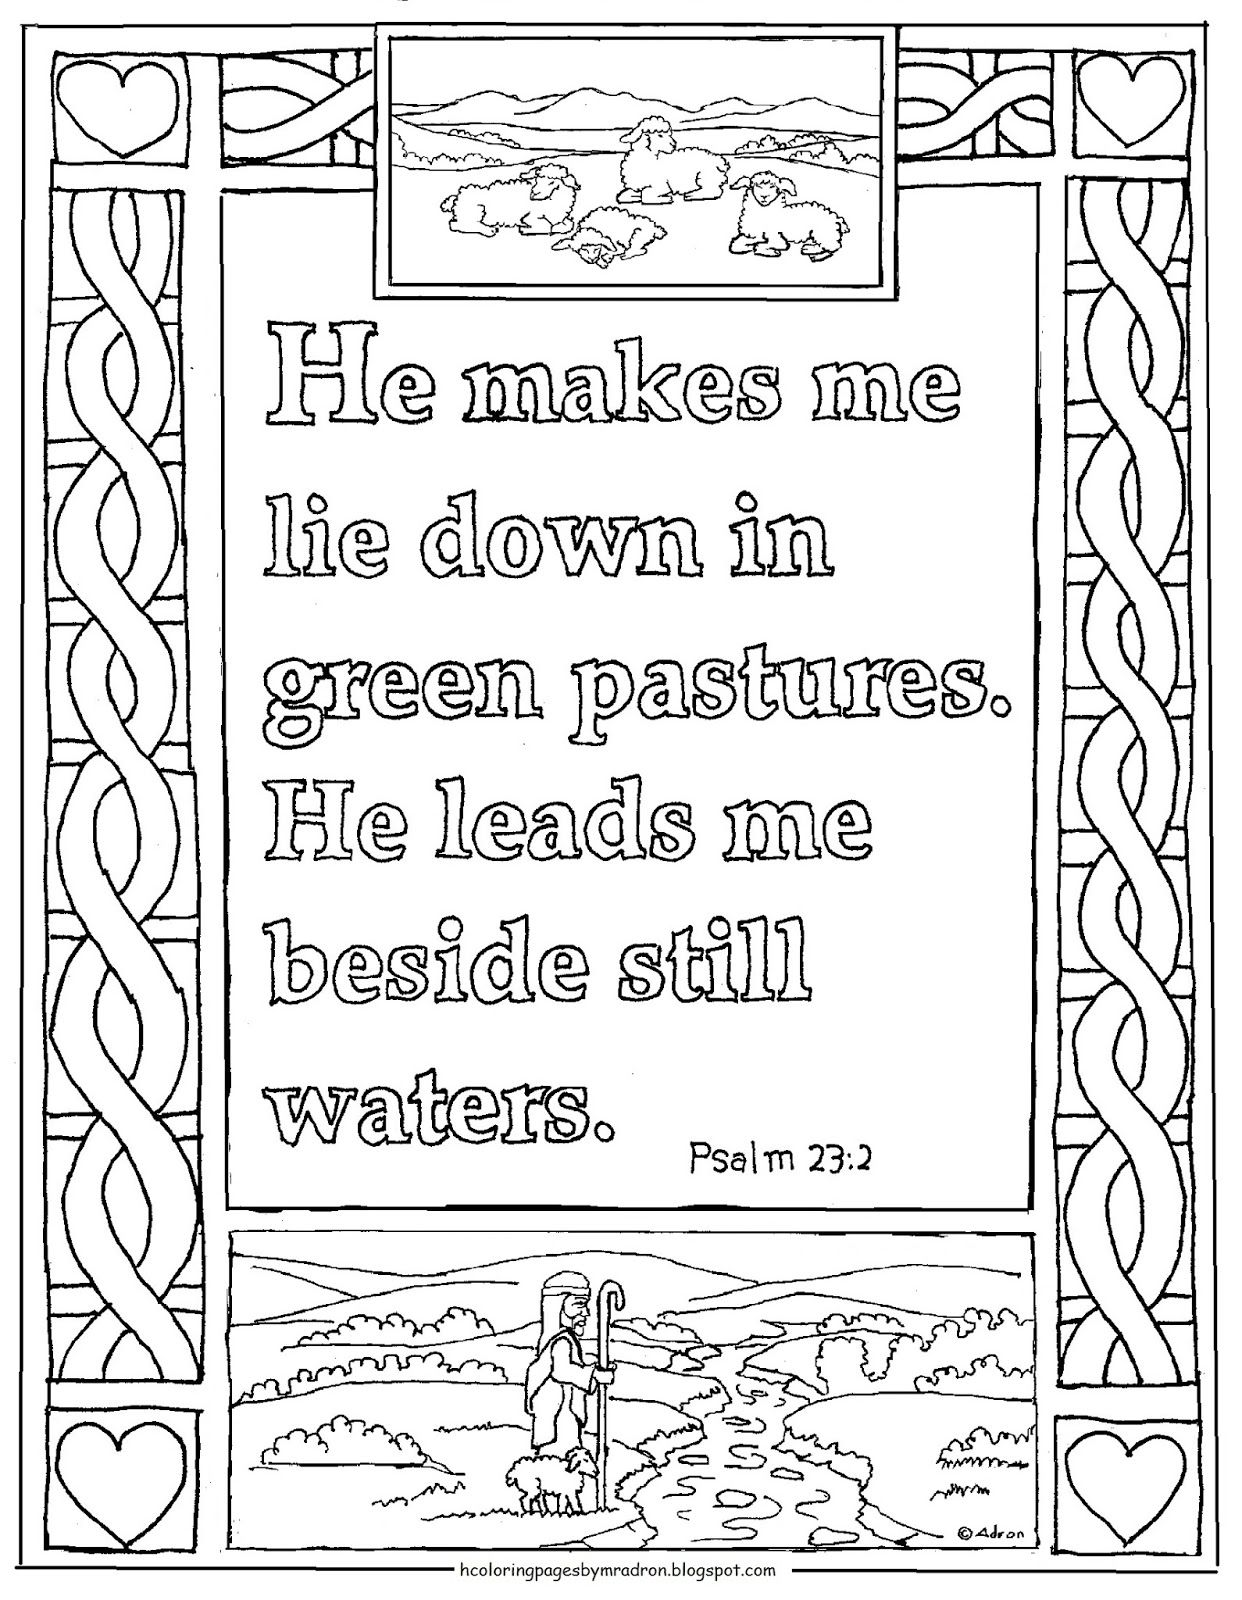 Psalm 23 2 Printable Coloring Page It Is The Green